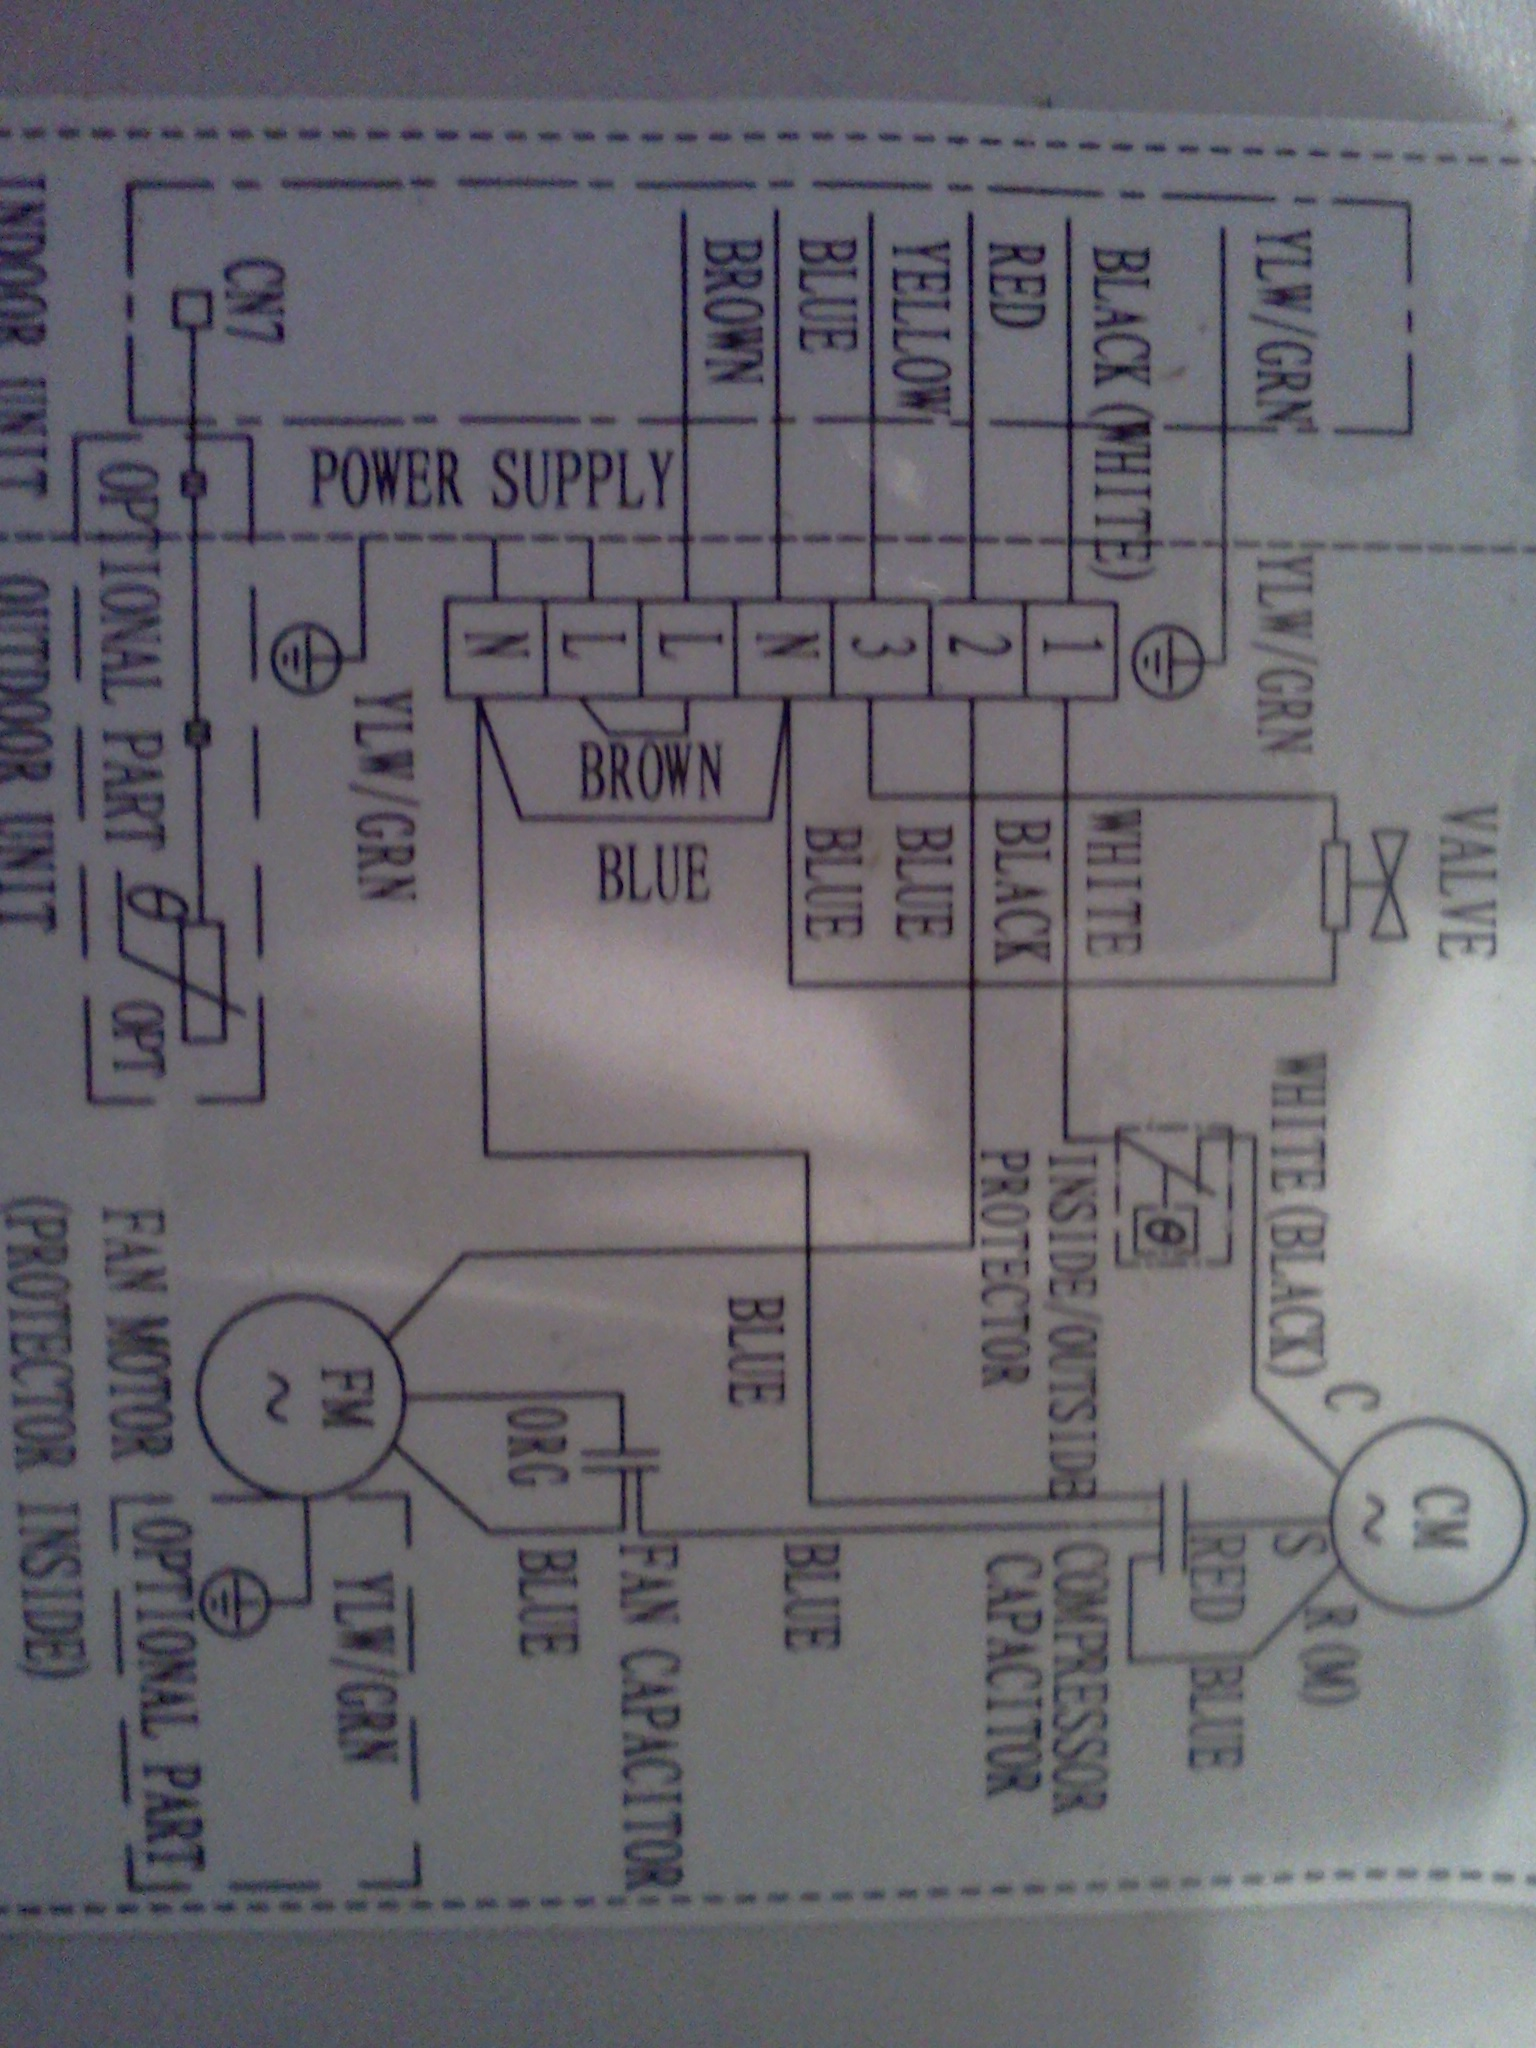 Wiring Diagram For Hvac Unit Also Window Air Conditioner Wiring